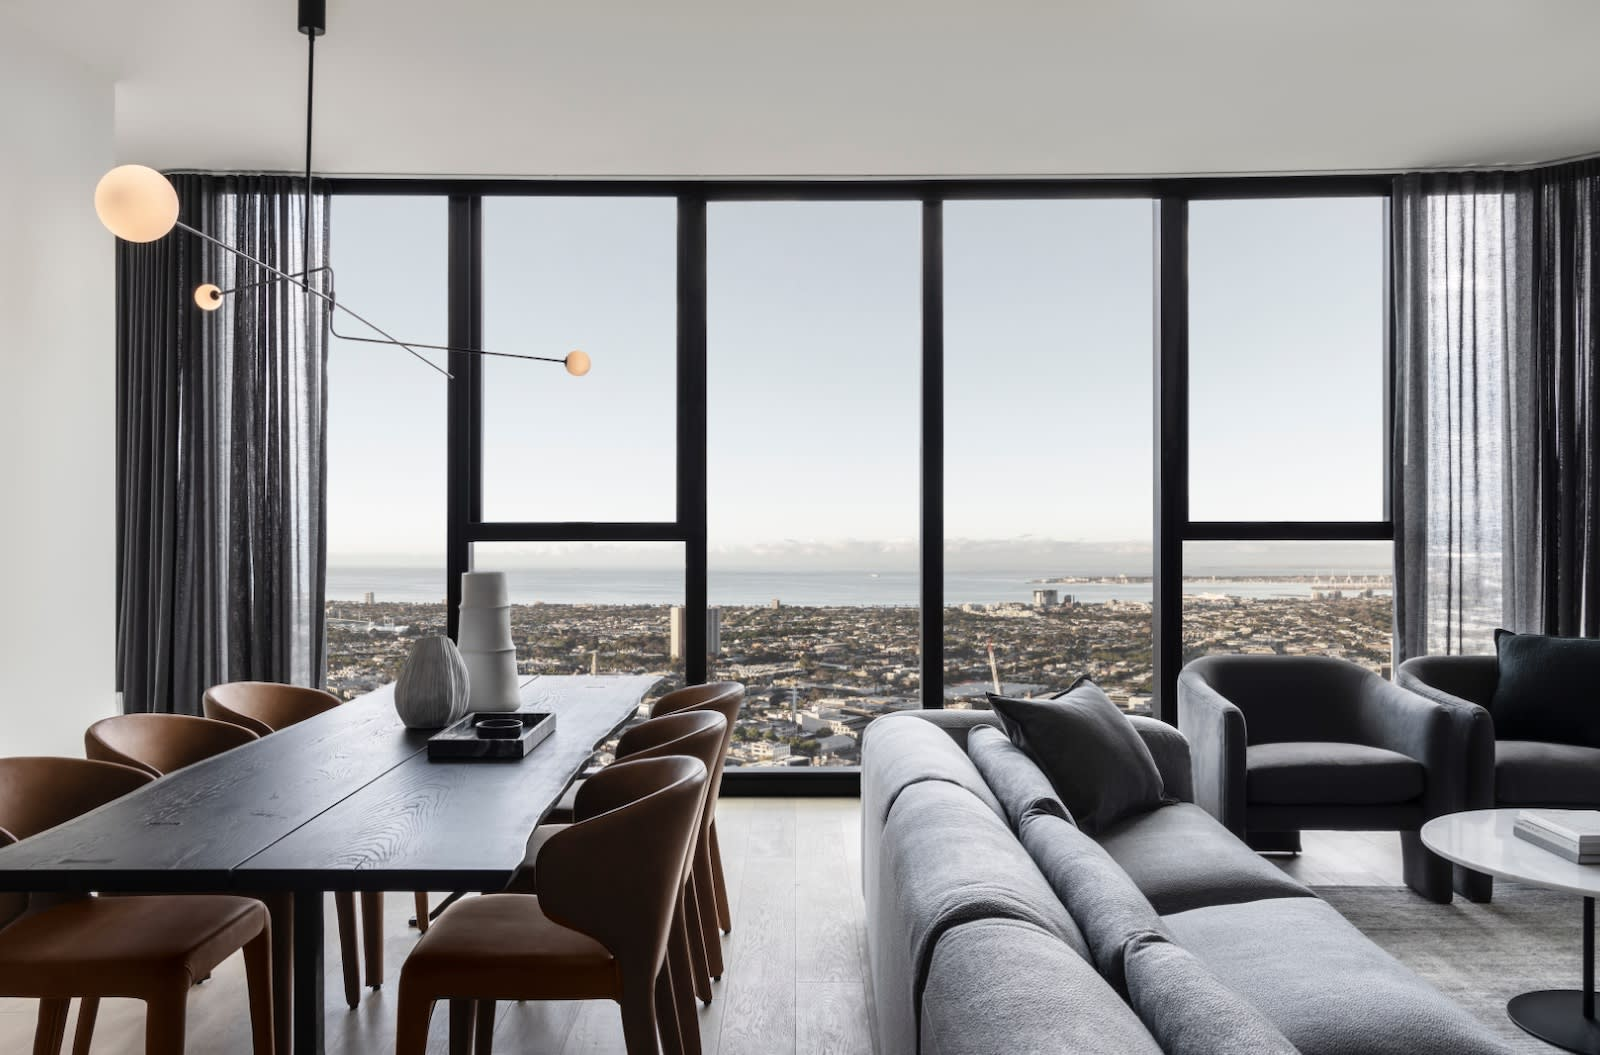 Melbourne Square penthouse sells for over $3.4 million